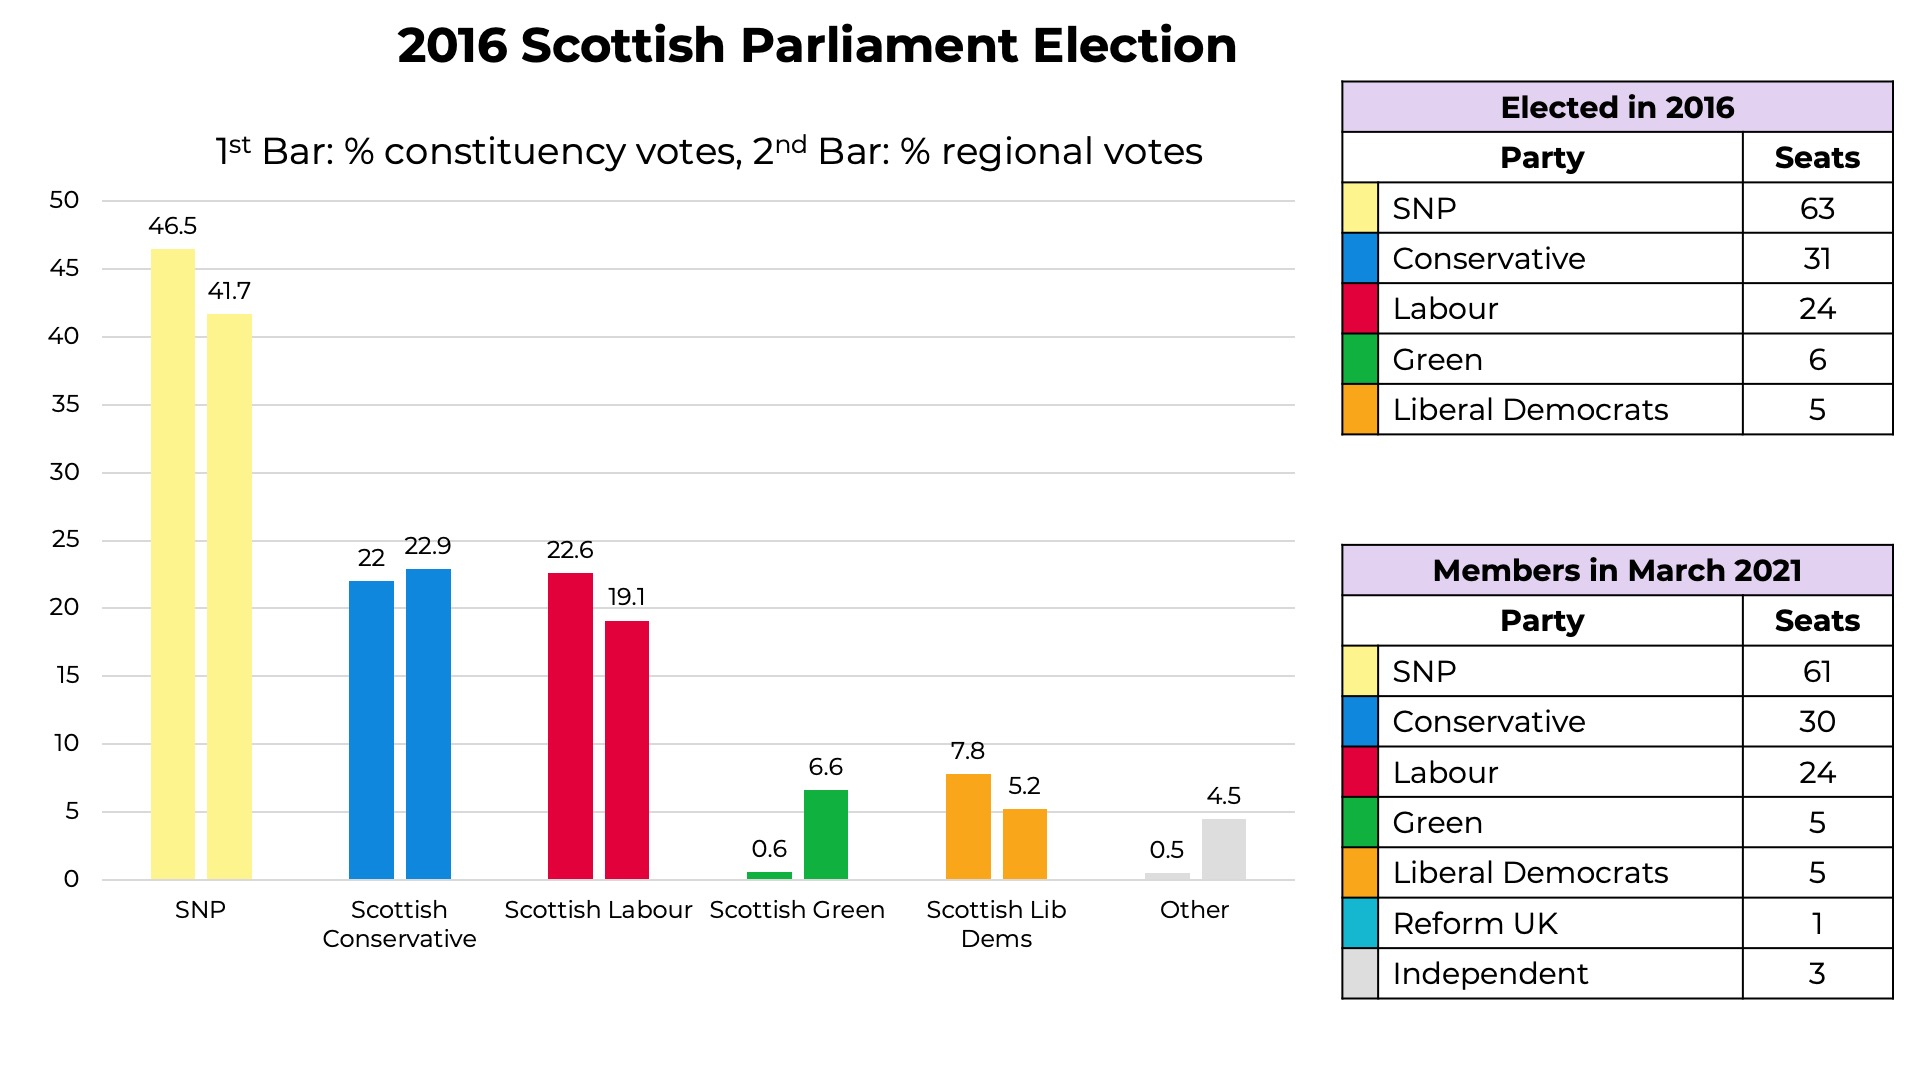 2016 Scottish Parliament Election results